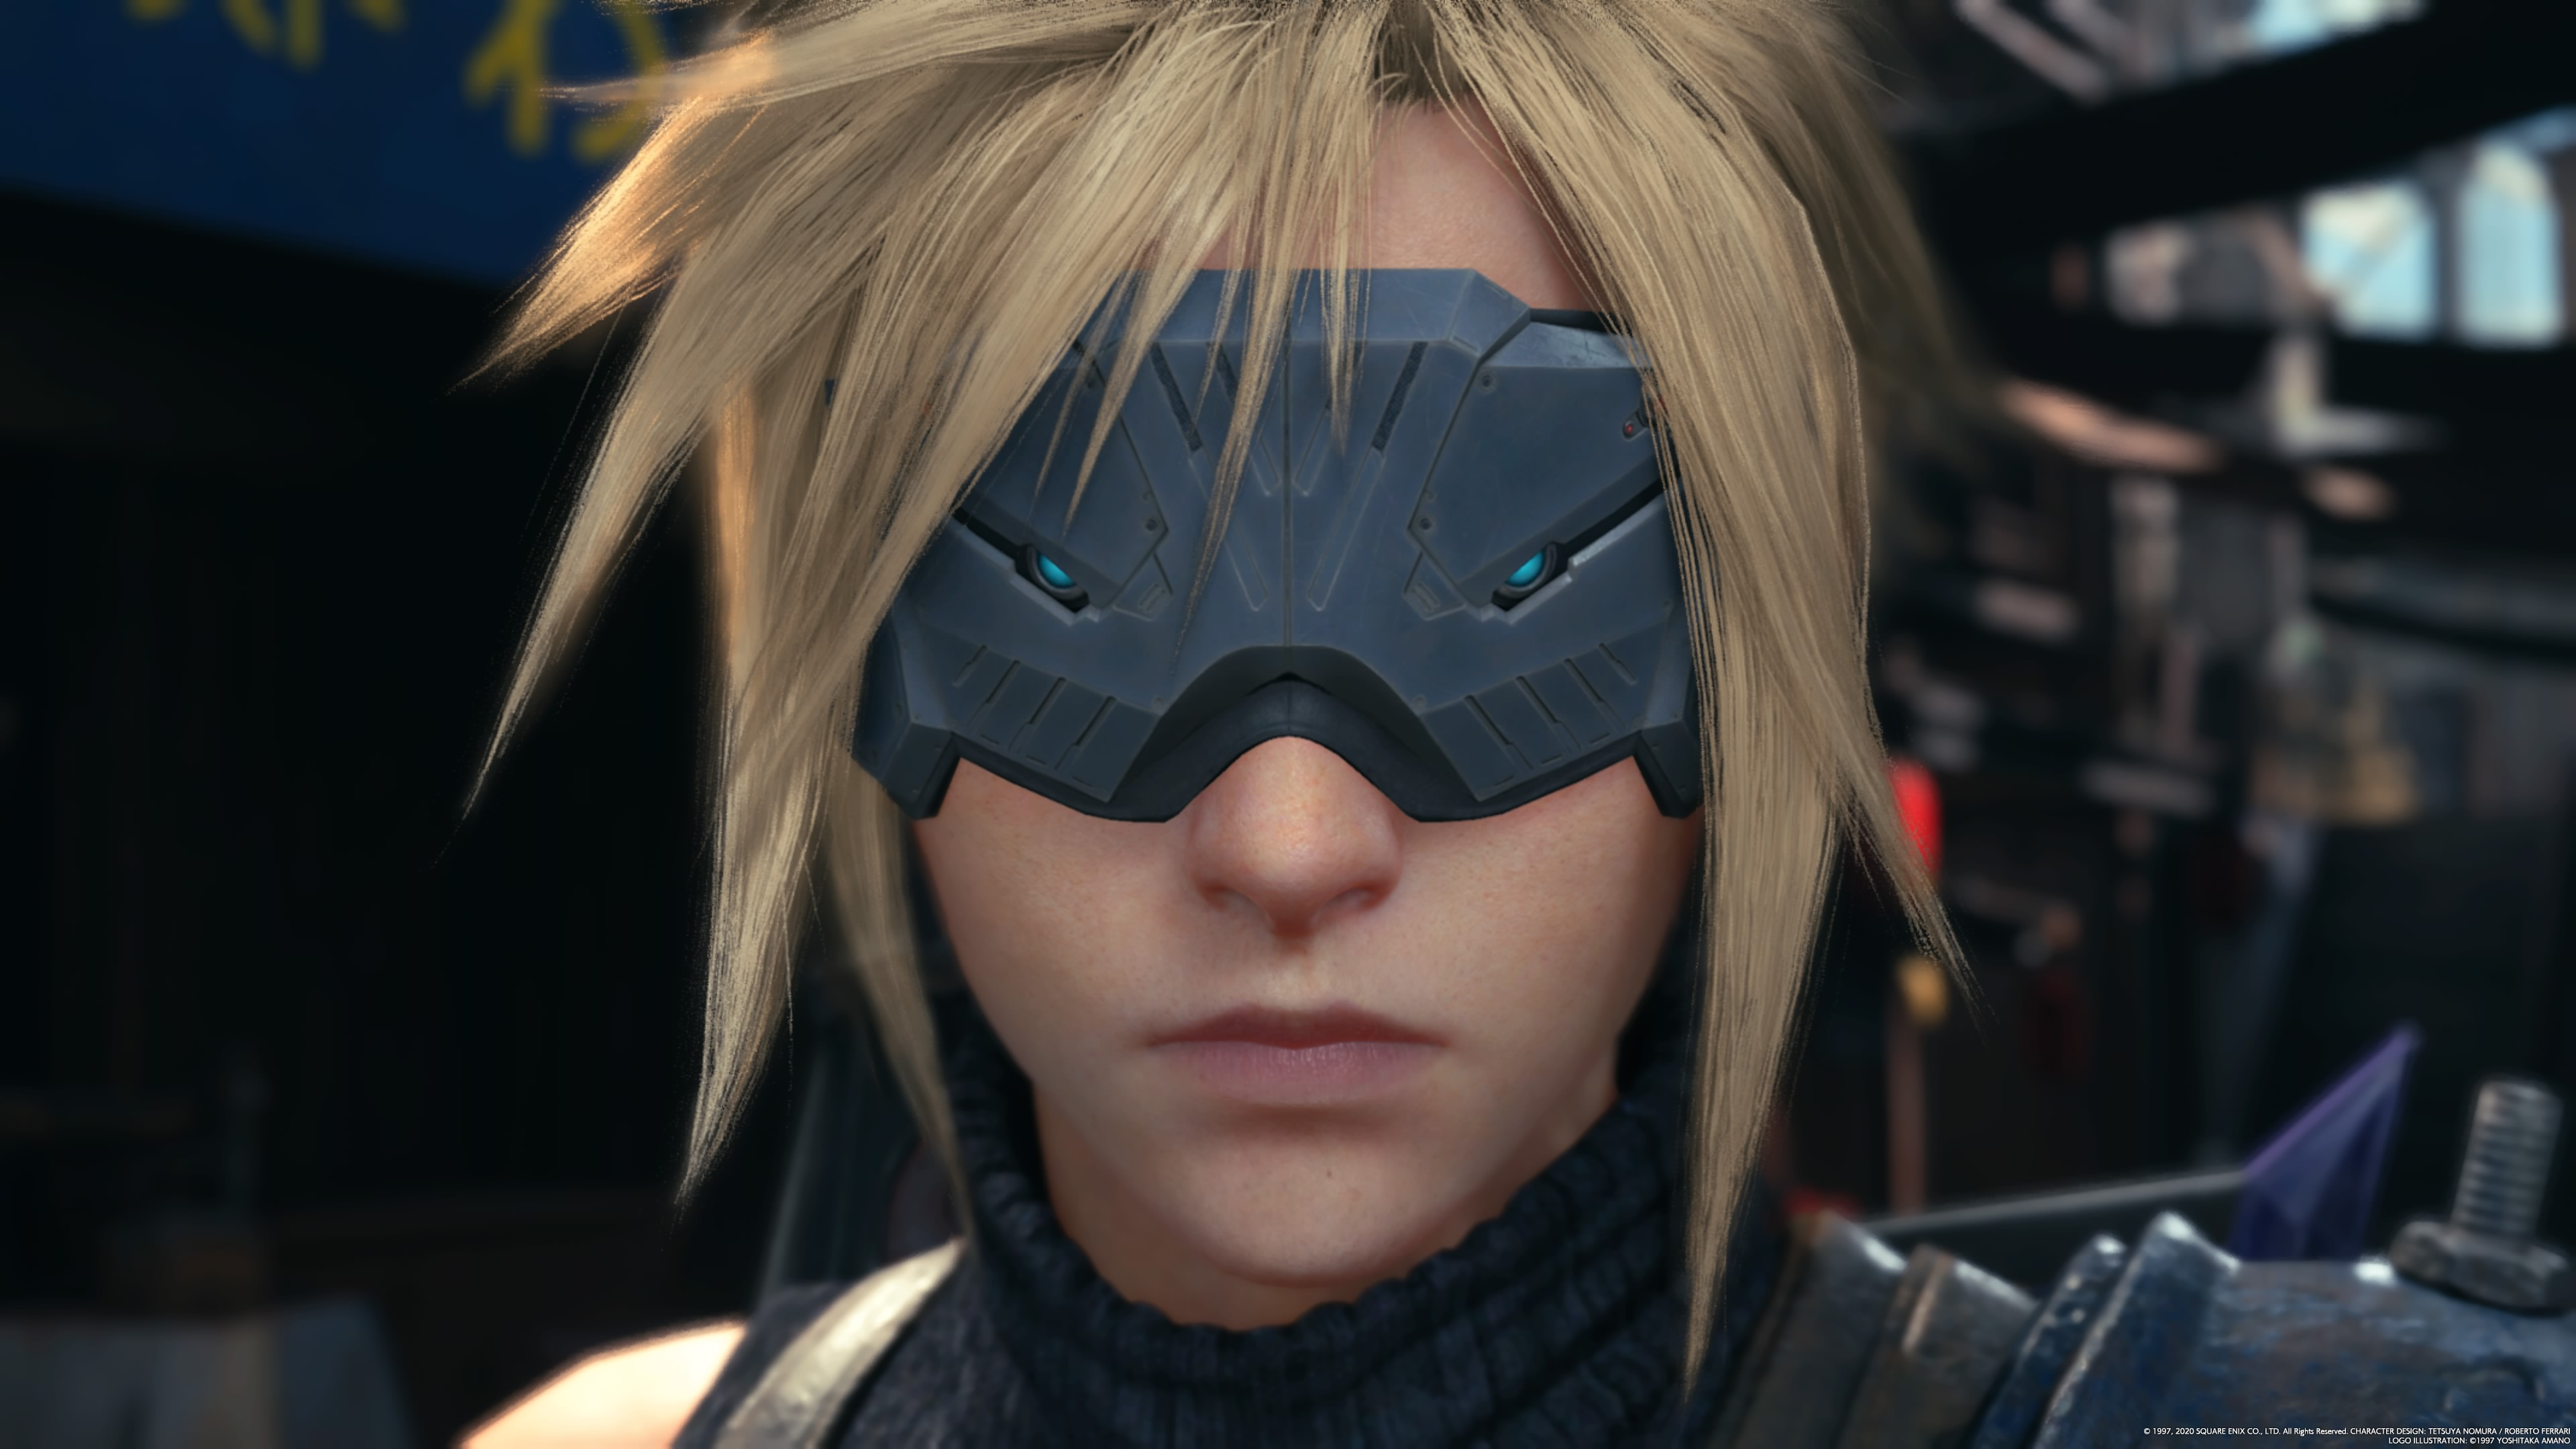 Cloud from the Final Fantasy 7 Remake wearing VR googles